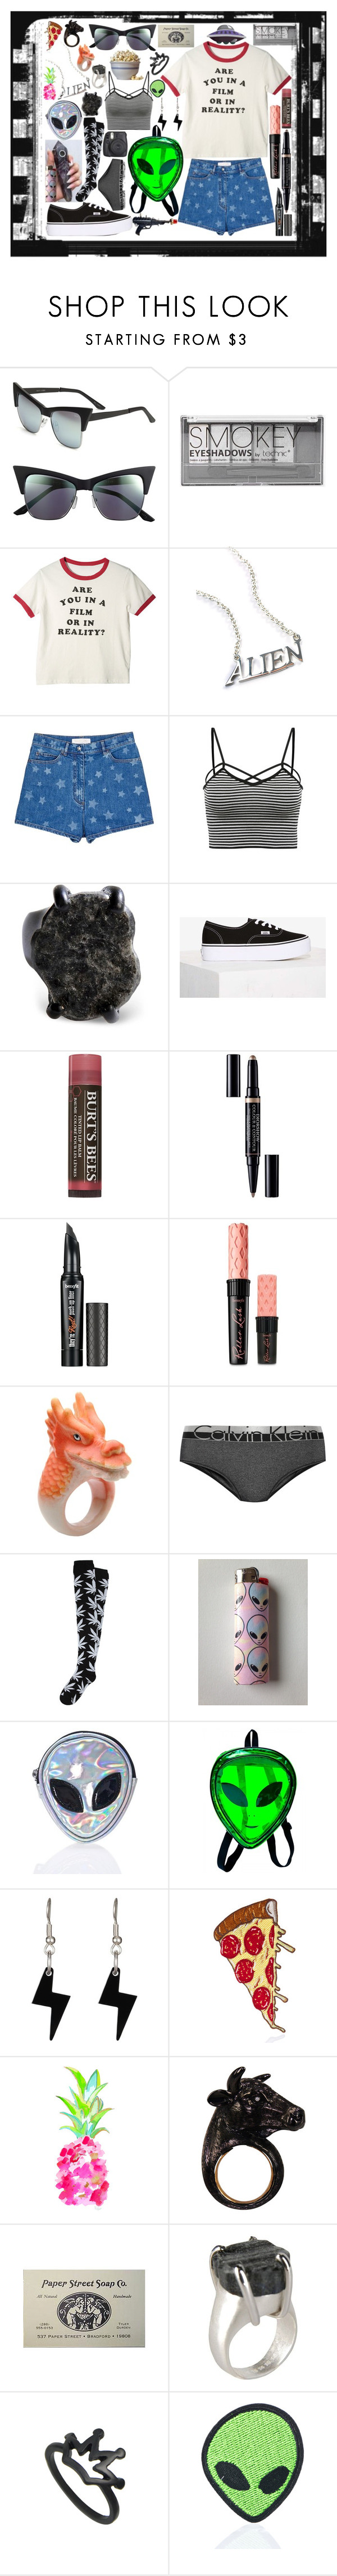 """Not In Reality"" by lenbb ❤ liked on Polyvore featuring Quay, Boohoo, Disturbia, Valentino, Maison Margiela, Vans, Burt's Bees, Christian Dior, Benefit and Nach"